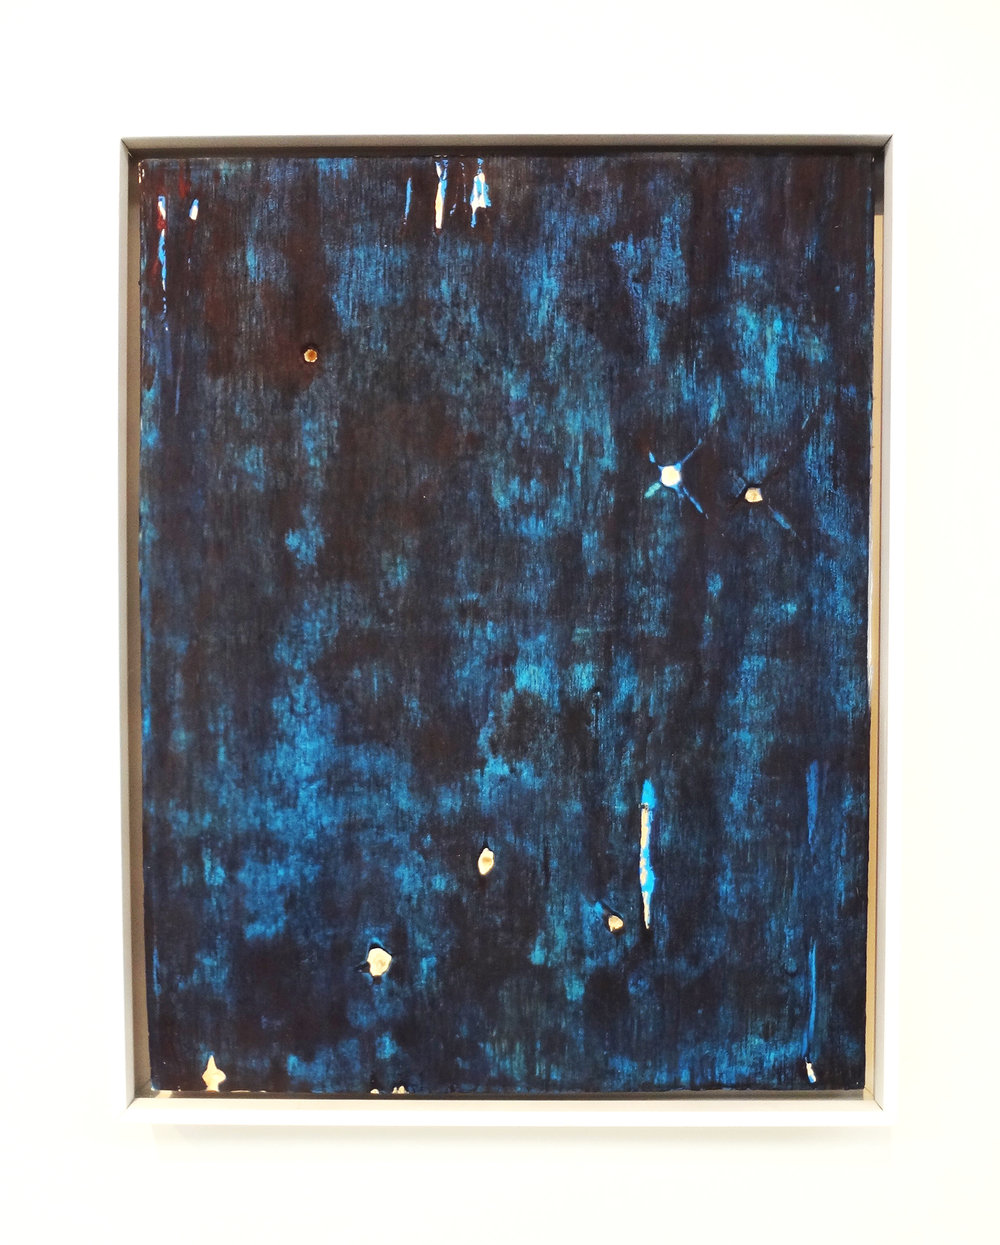 Meghan Gerety  9.15.15 8:15PM NE , 2015 blockprint ink on plywood 15 x 12 in. framed in aluminum